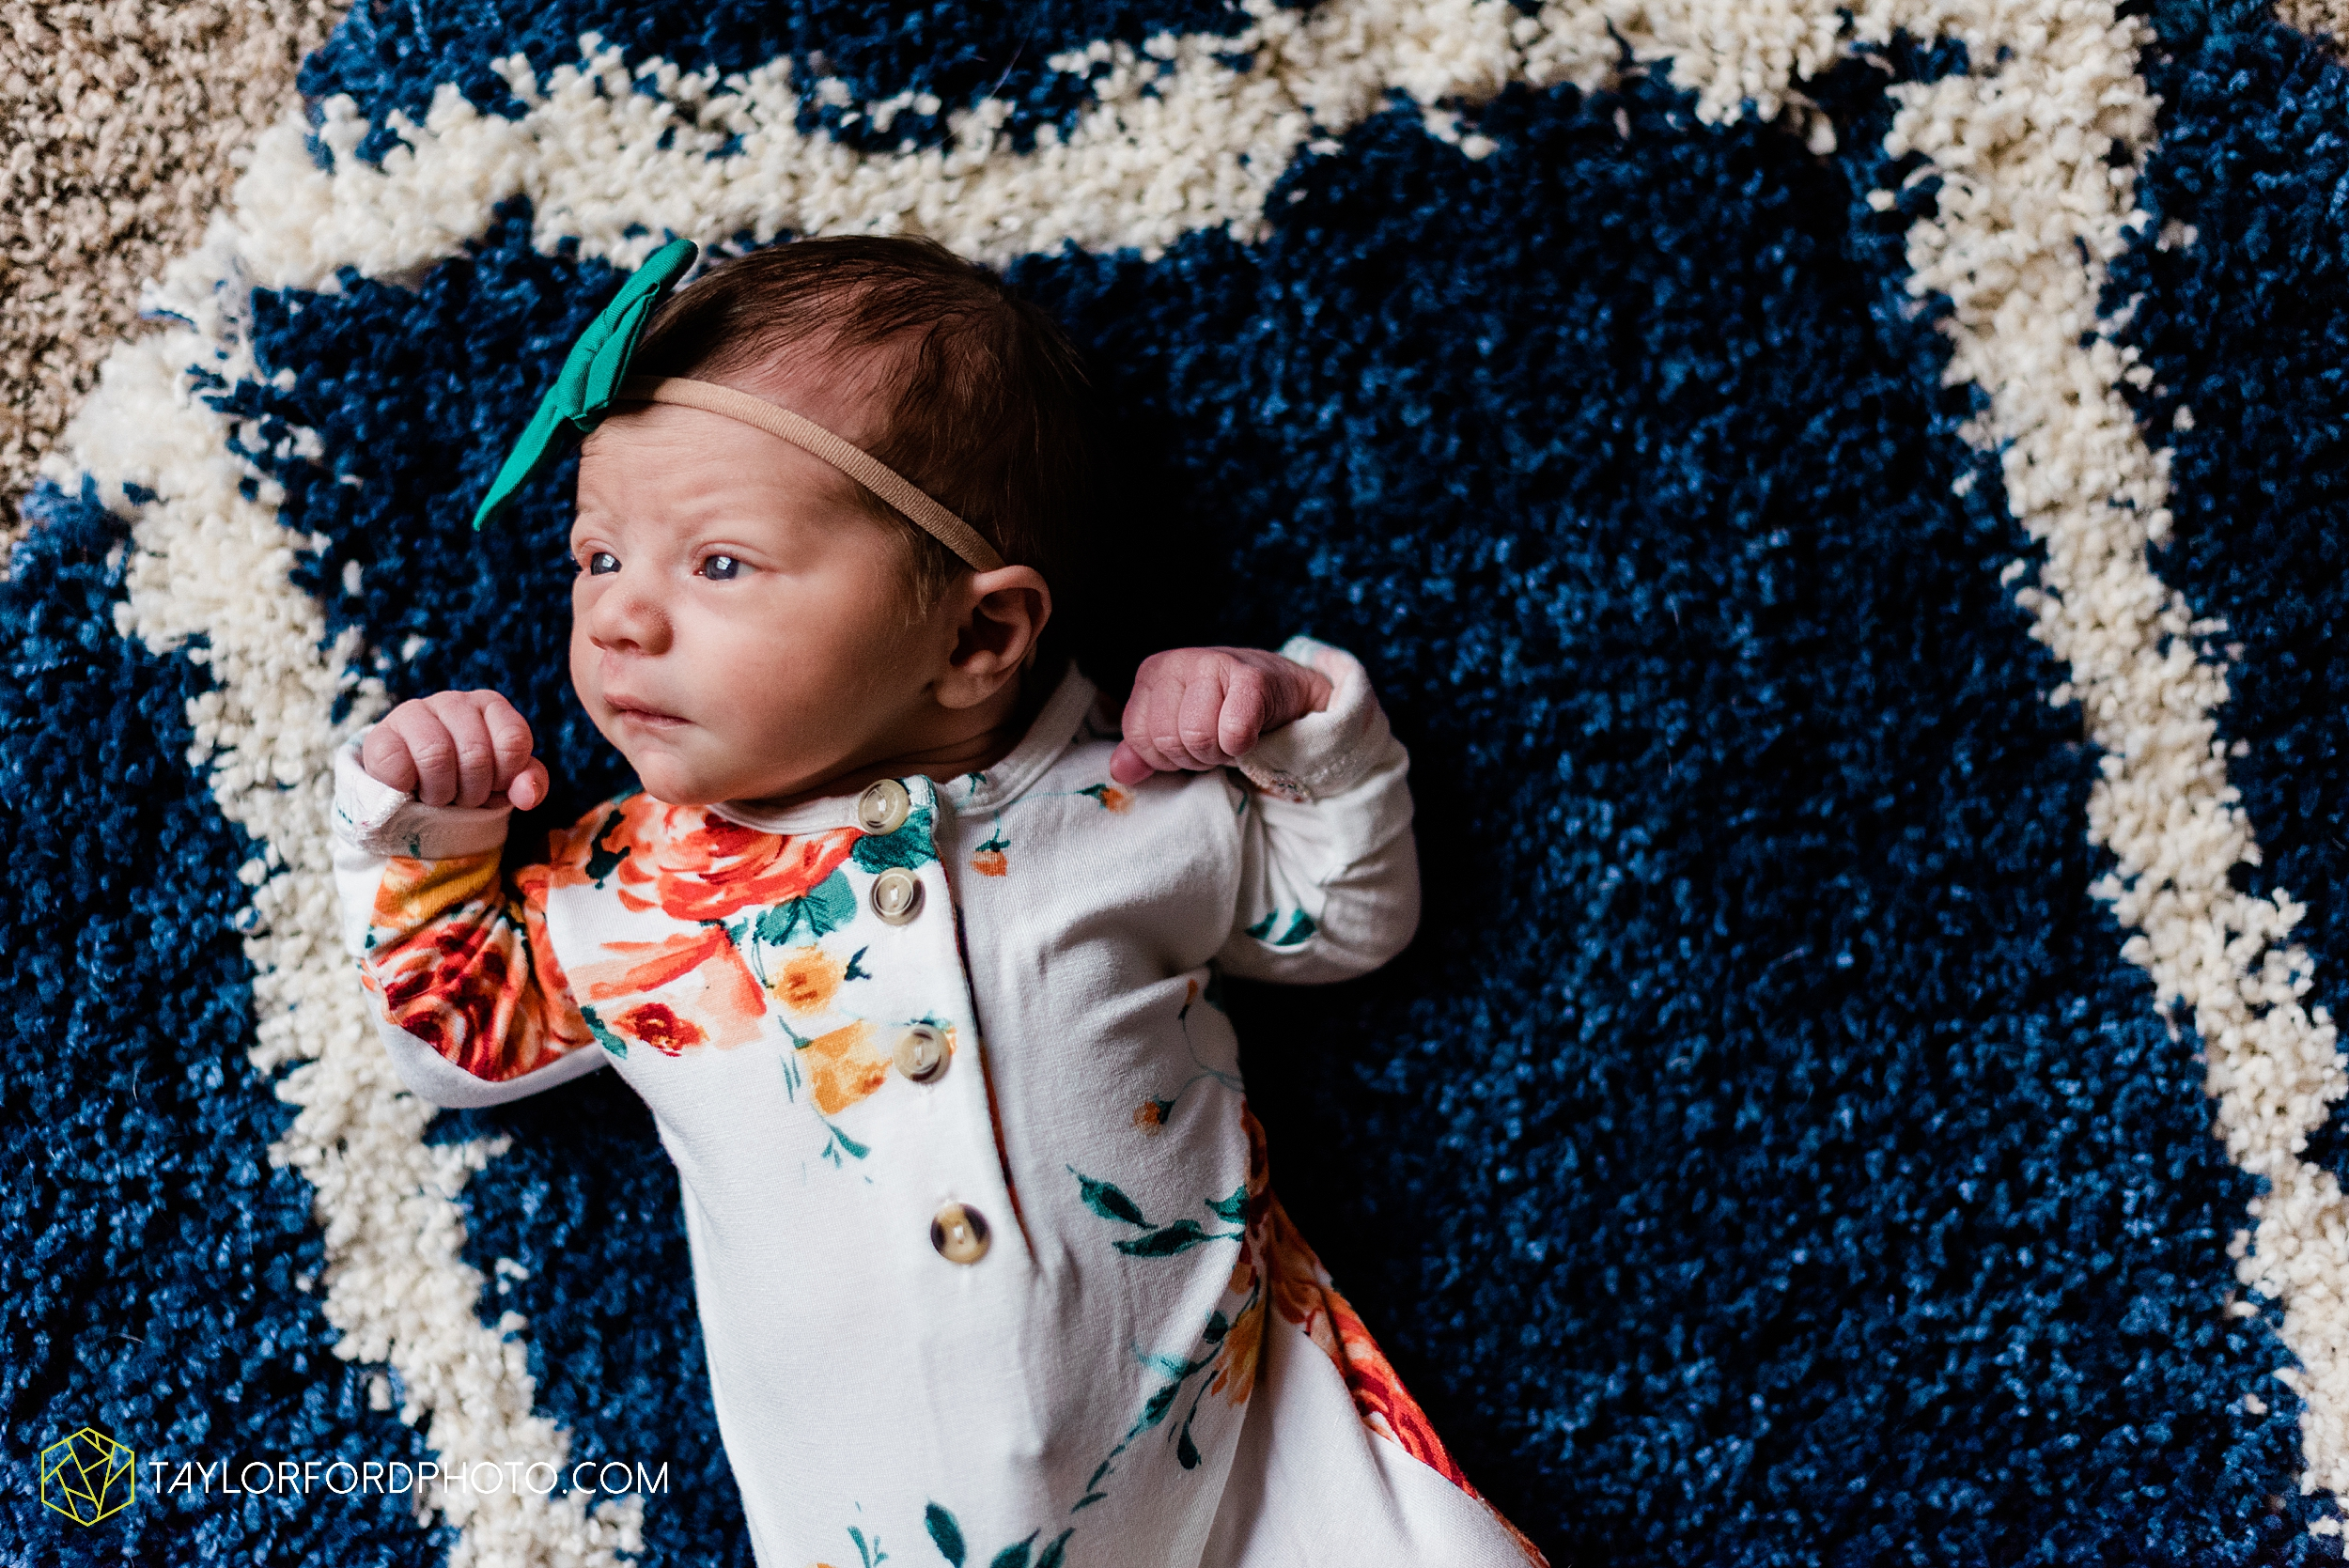 ashley-aaron-noraa-lifestyle-at-home-family-newborn-blacklick-columbus-ohio-photography-taylor-ford-hirschy-photographer_2337.jpg